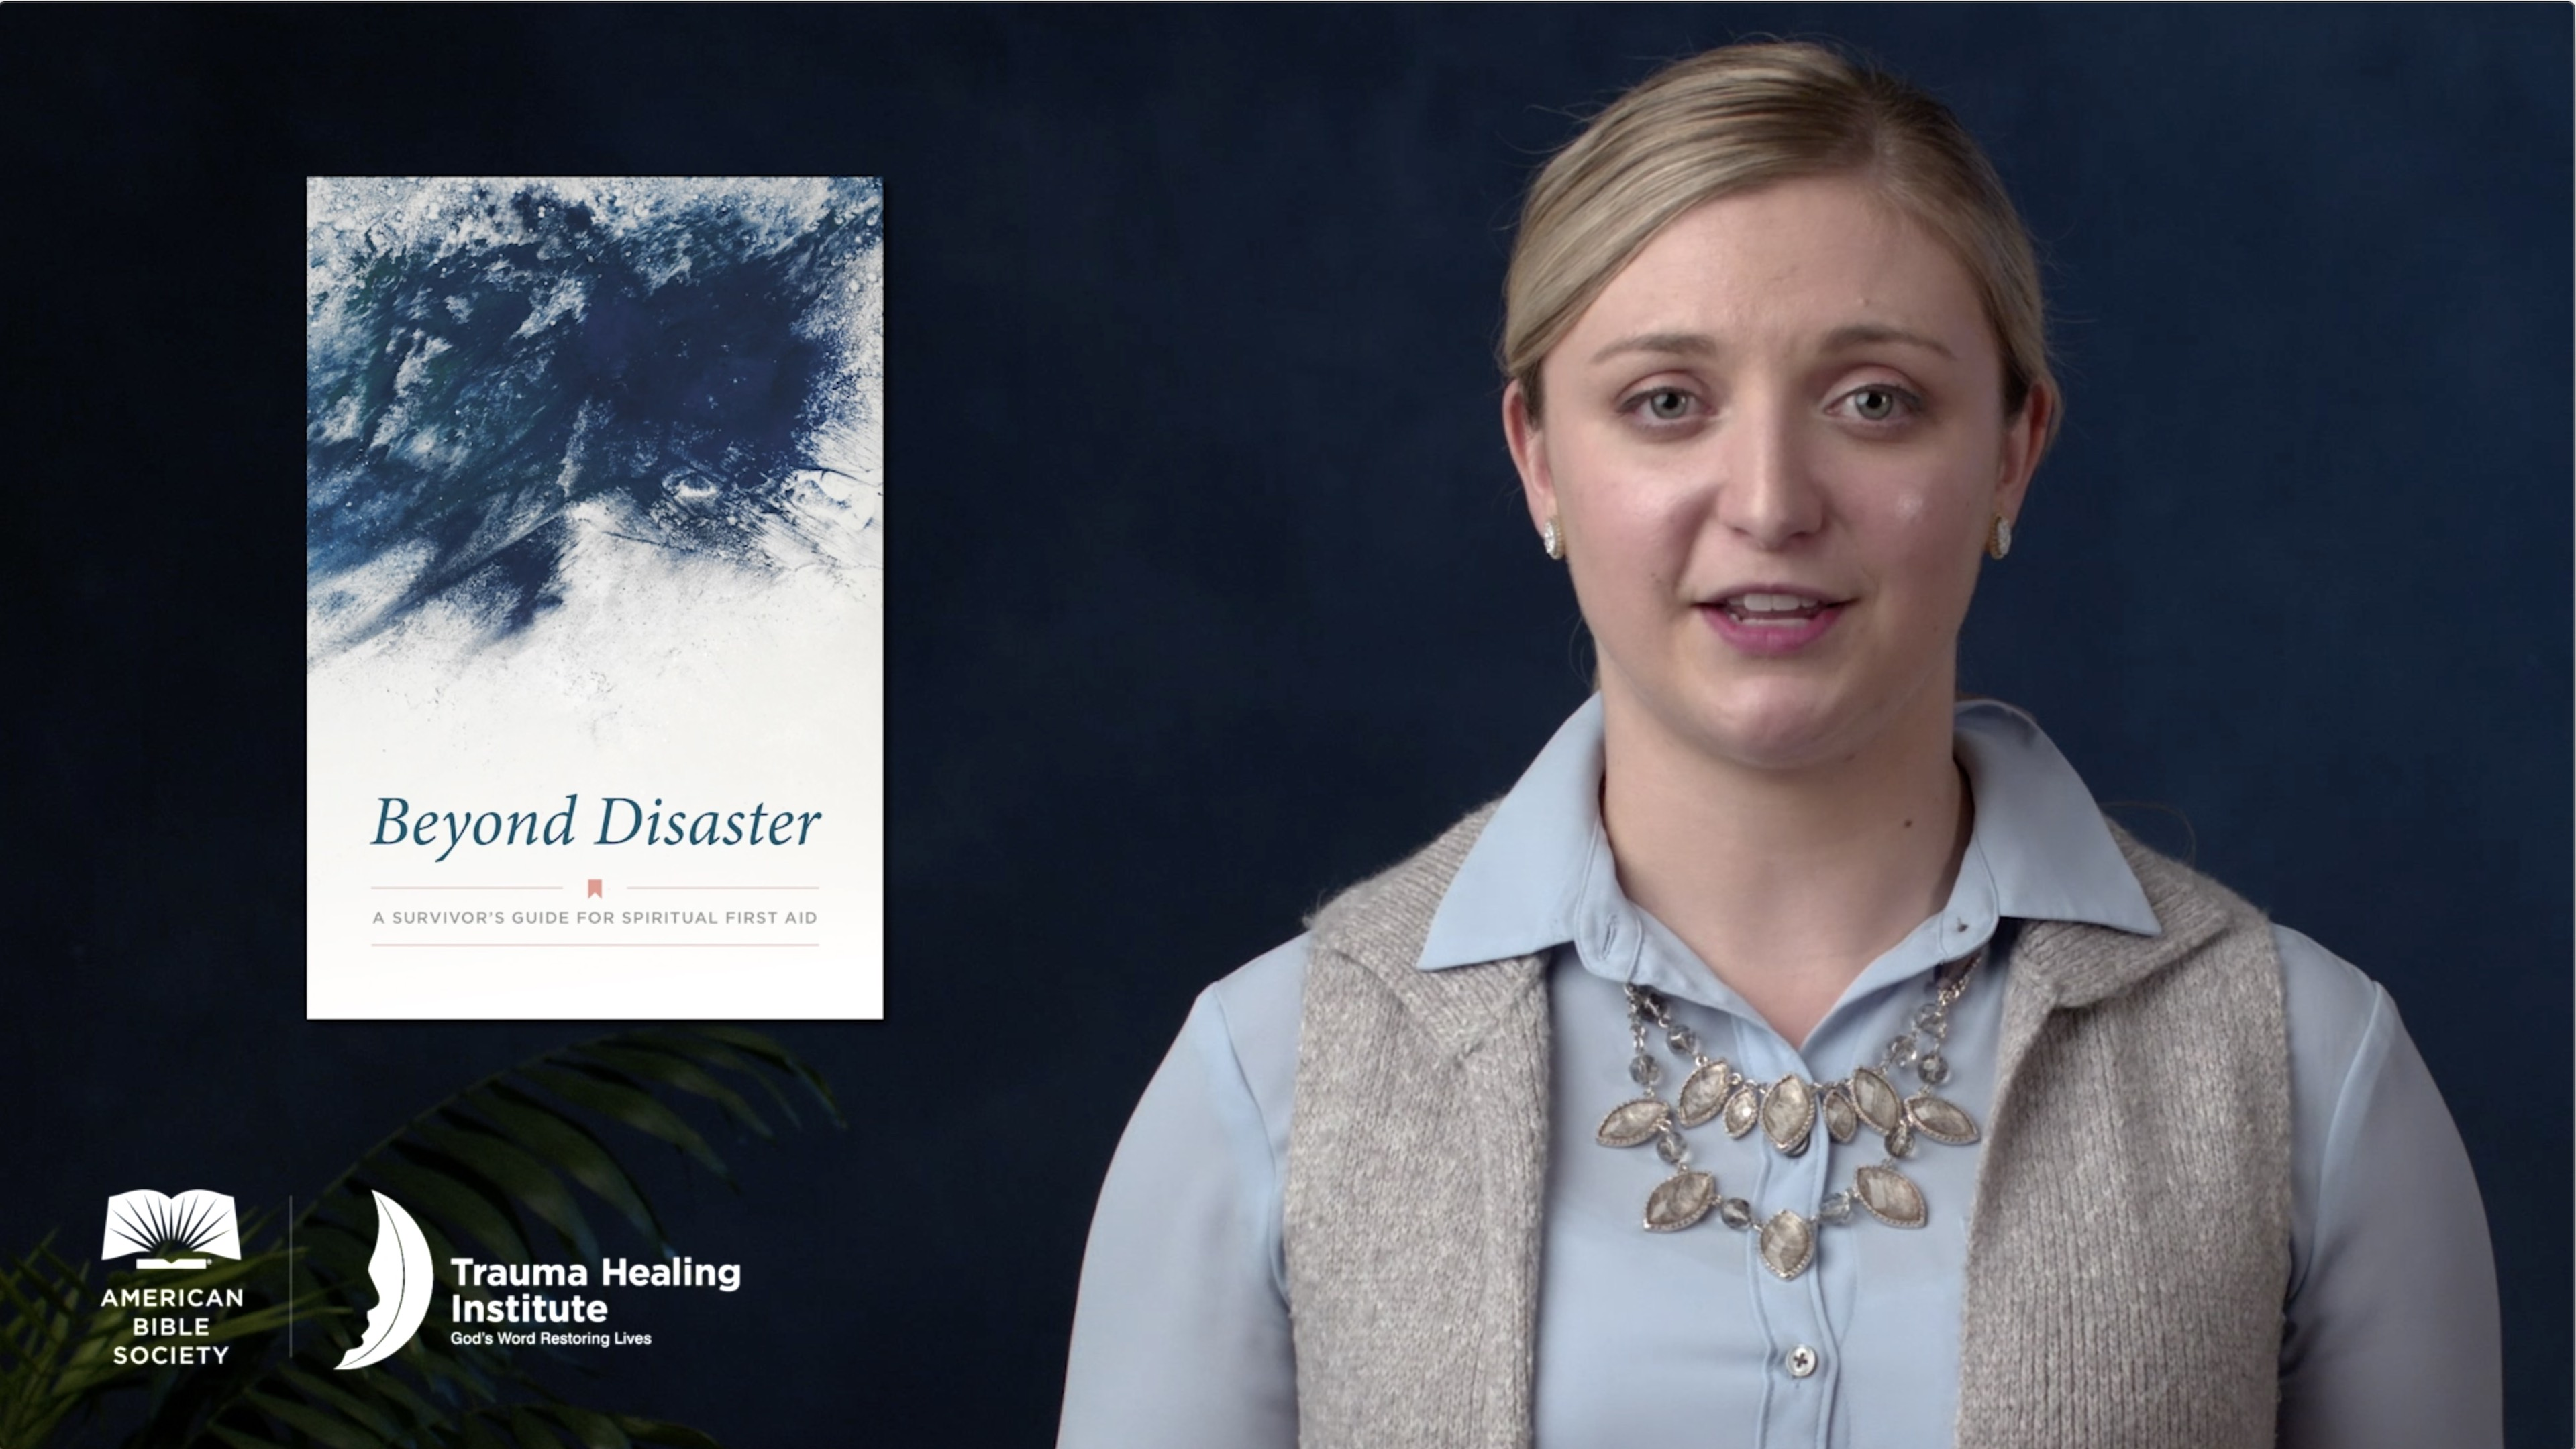 Brianna Leiendecker presents the Beyond Disaster booklet (screen capture)